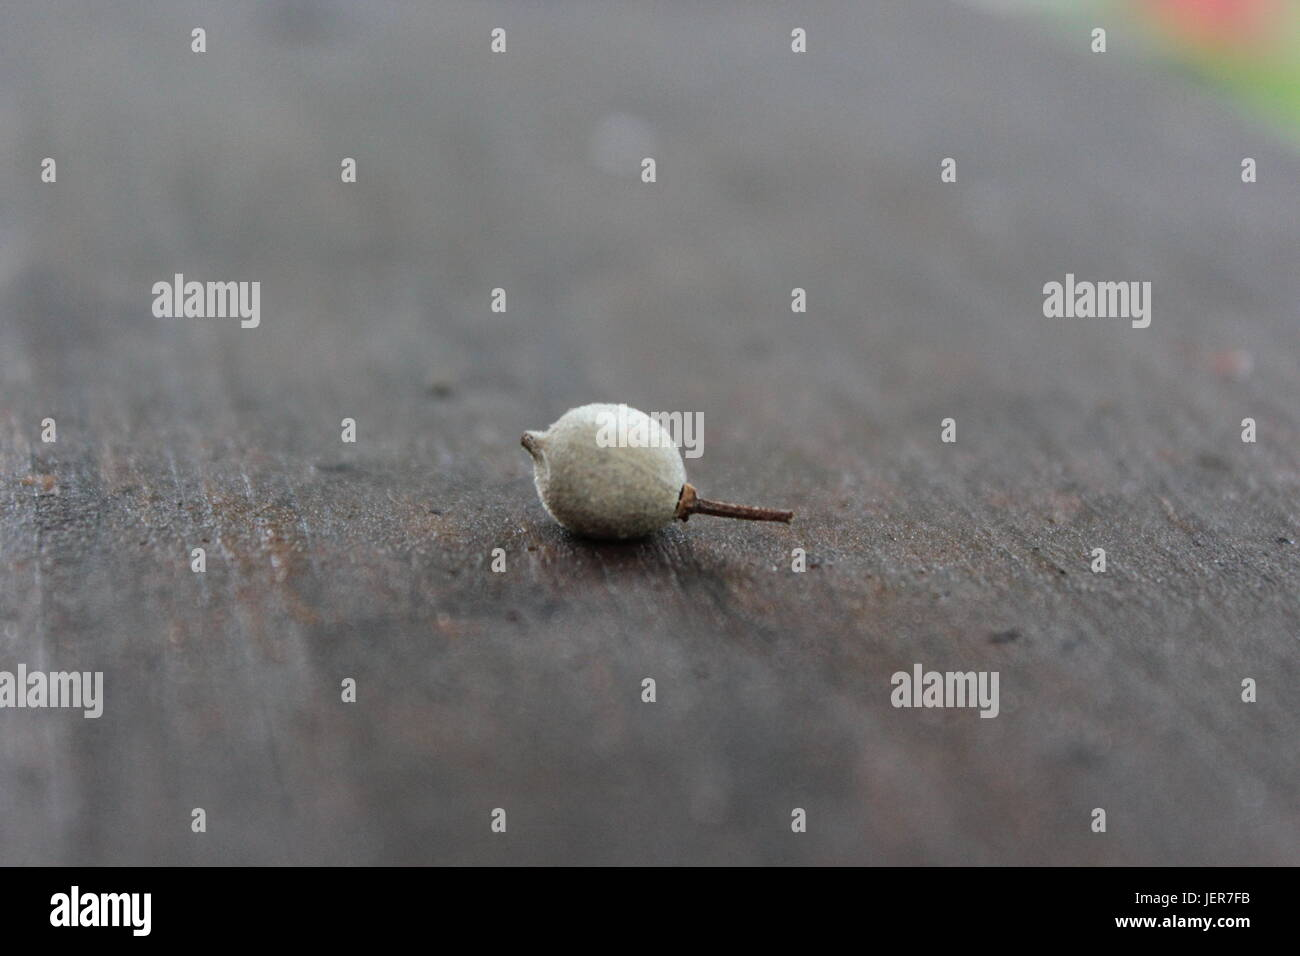 Young seed that has fallen from its mother tree landing gracefully onto this board. - Stock Image